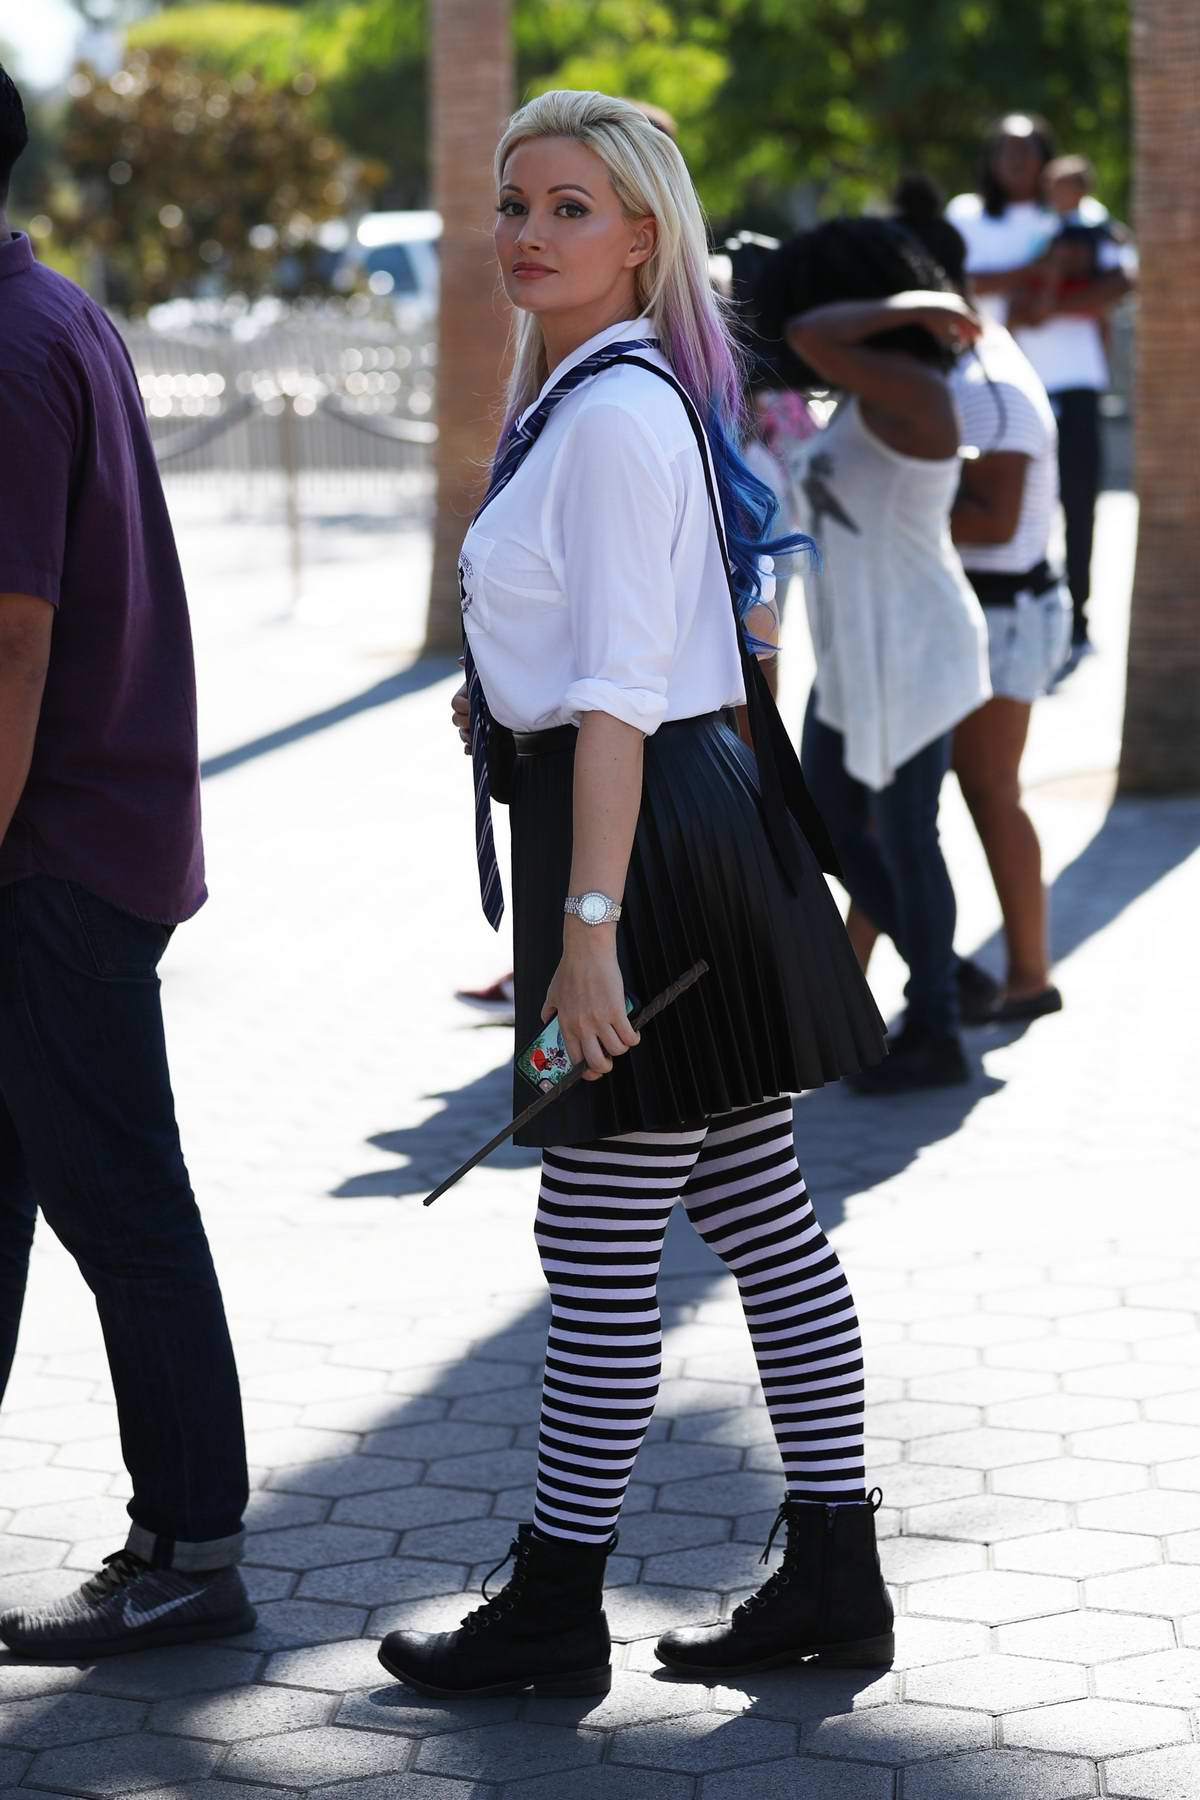 Holly Madison wears a Harry Potter outfit to Universal studios in Hollywood, Los Angeles